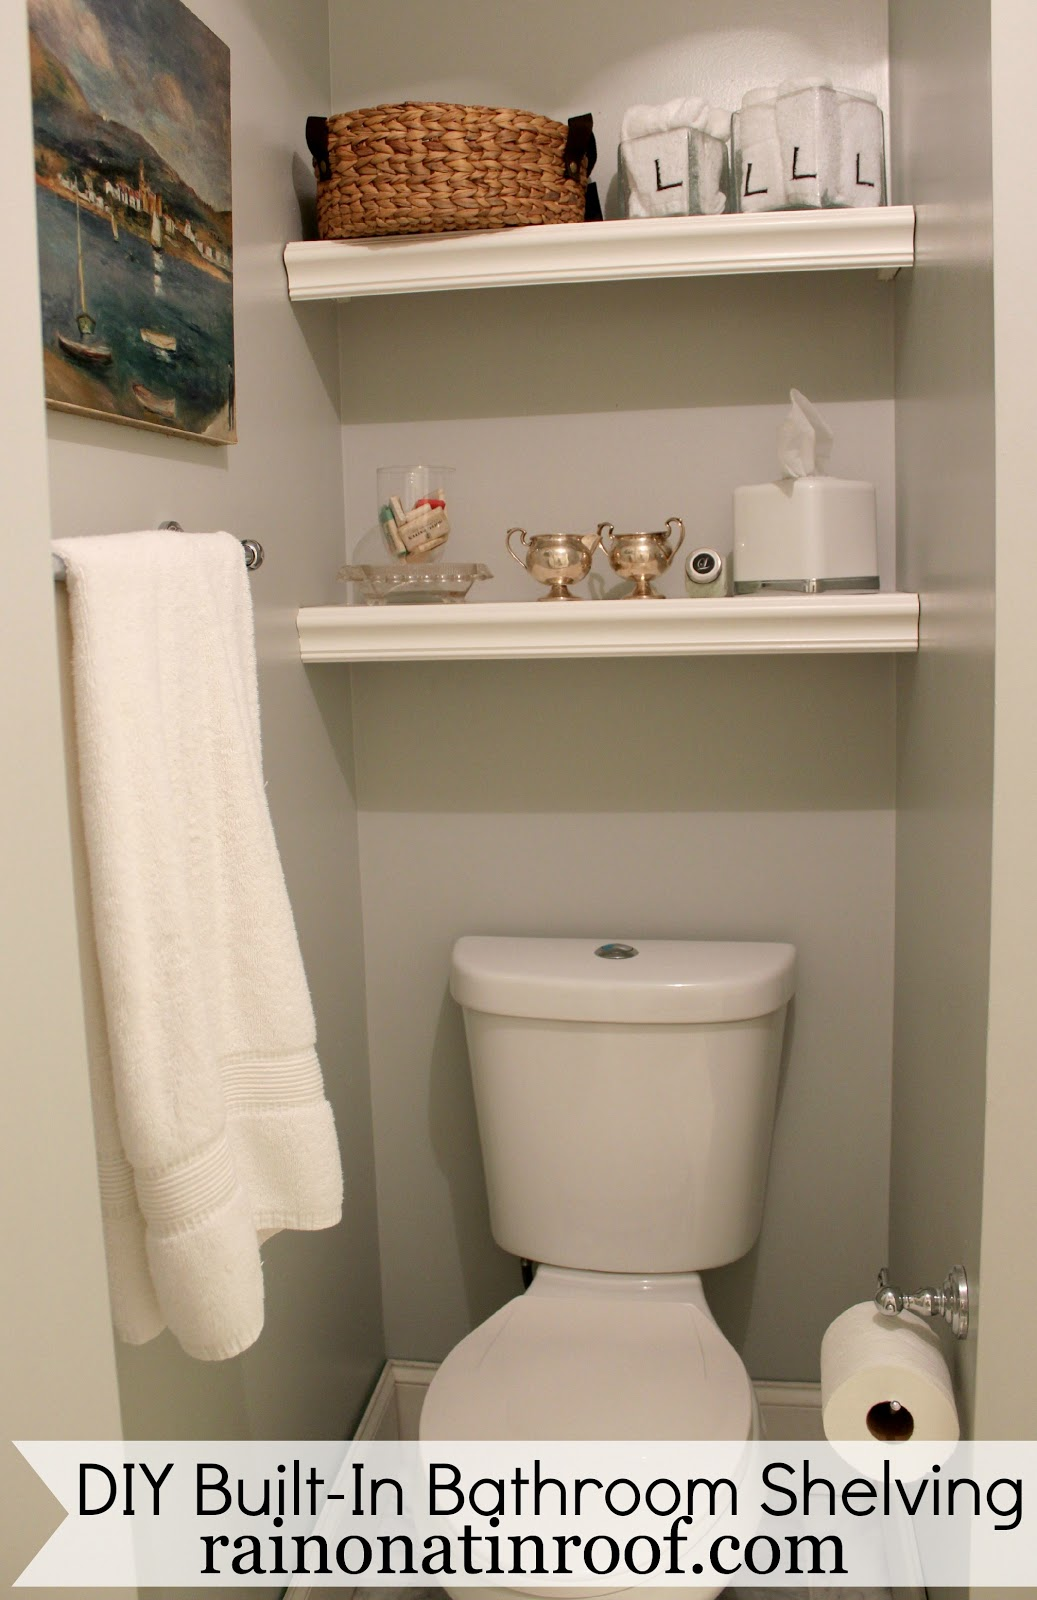 Built-In Bathroom Shelving (DIY for $25 or Less)